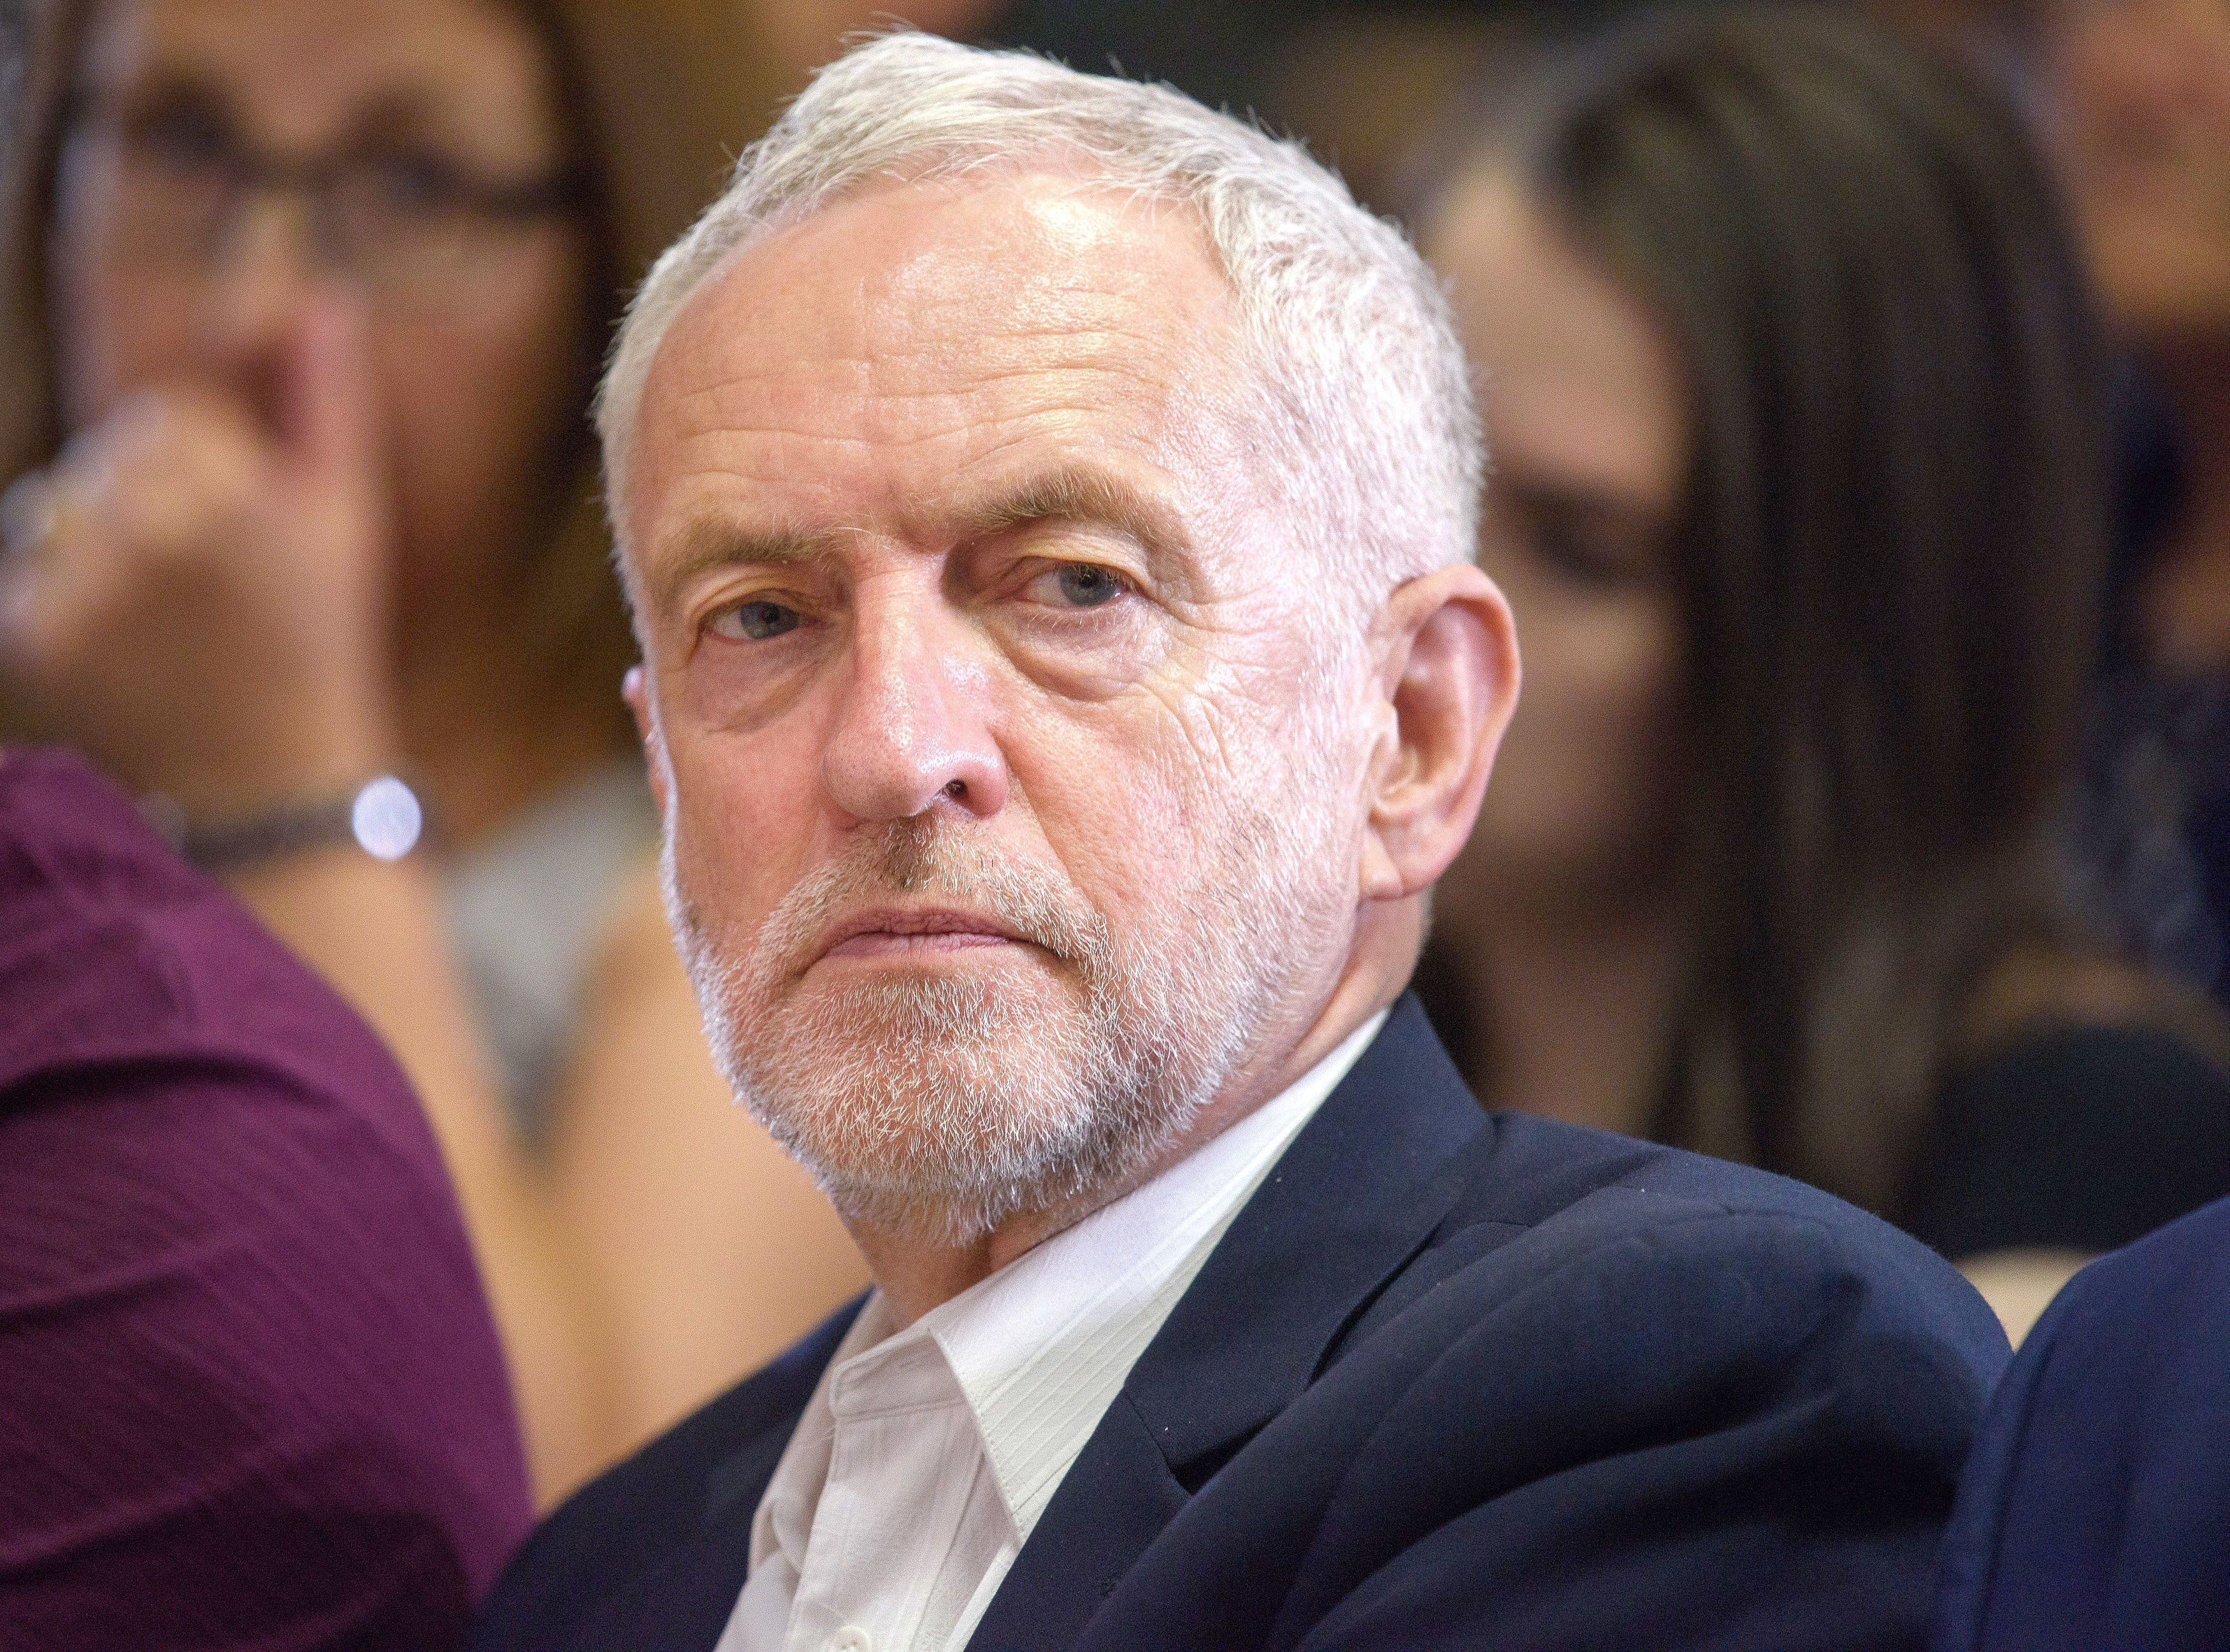 'Absolutely No Way' Demands For People's Vote On Brexit Deal Can Be Ignored, Says Senior Momentum